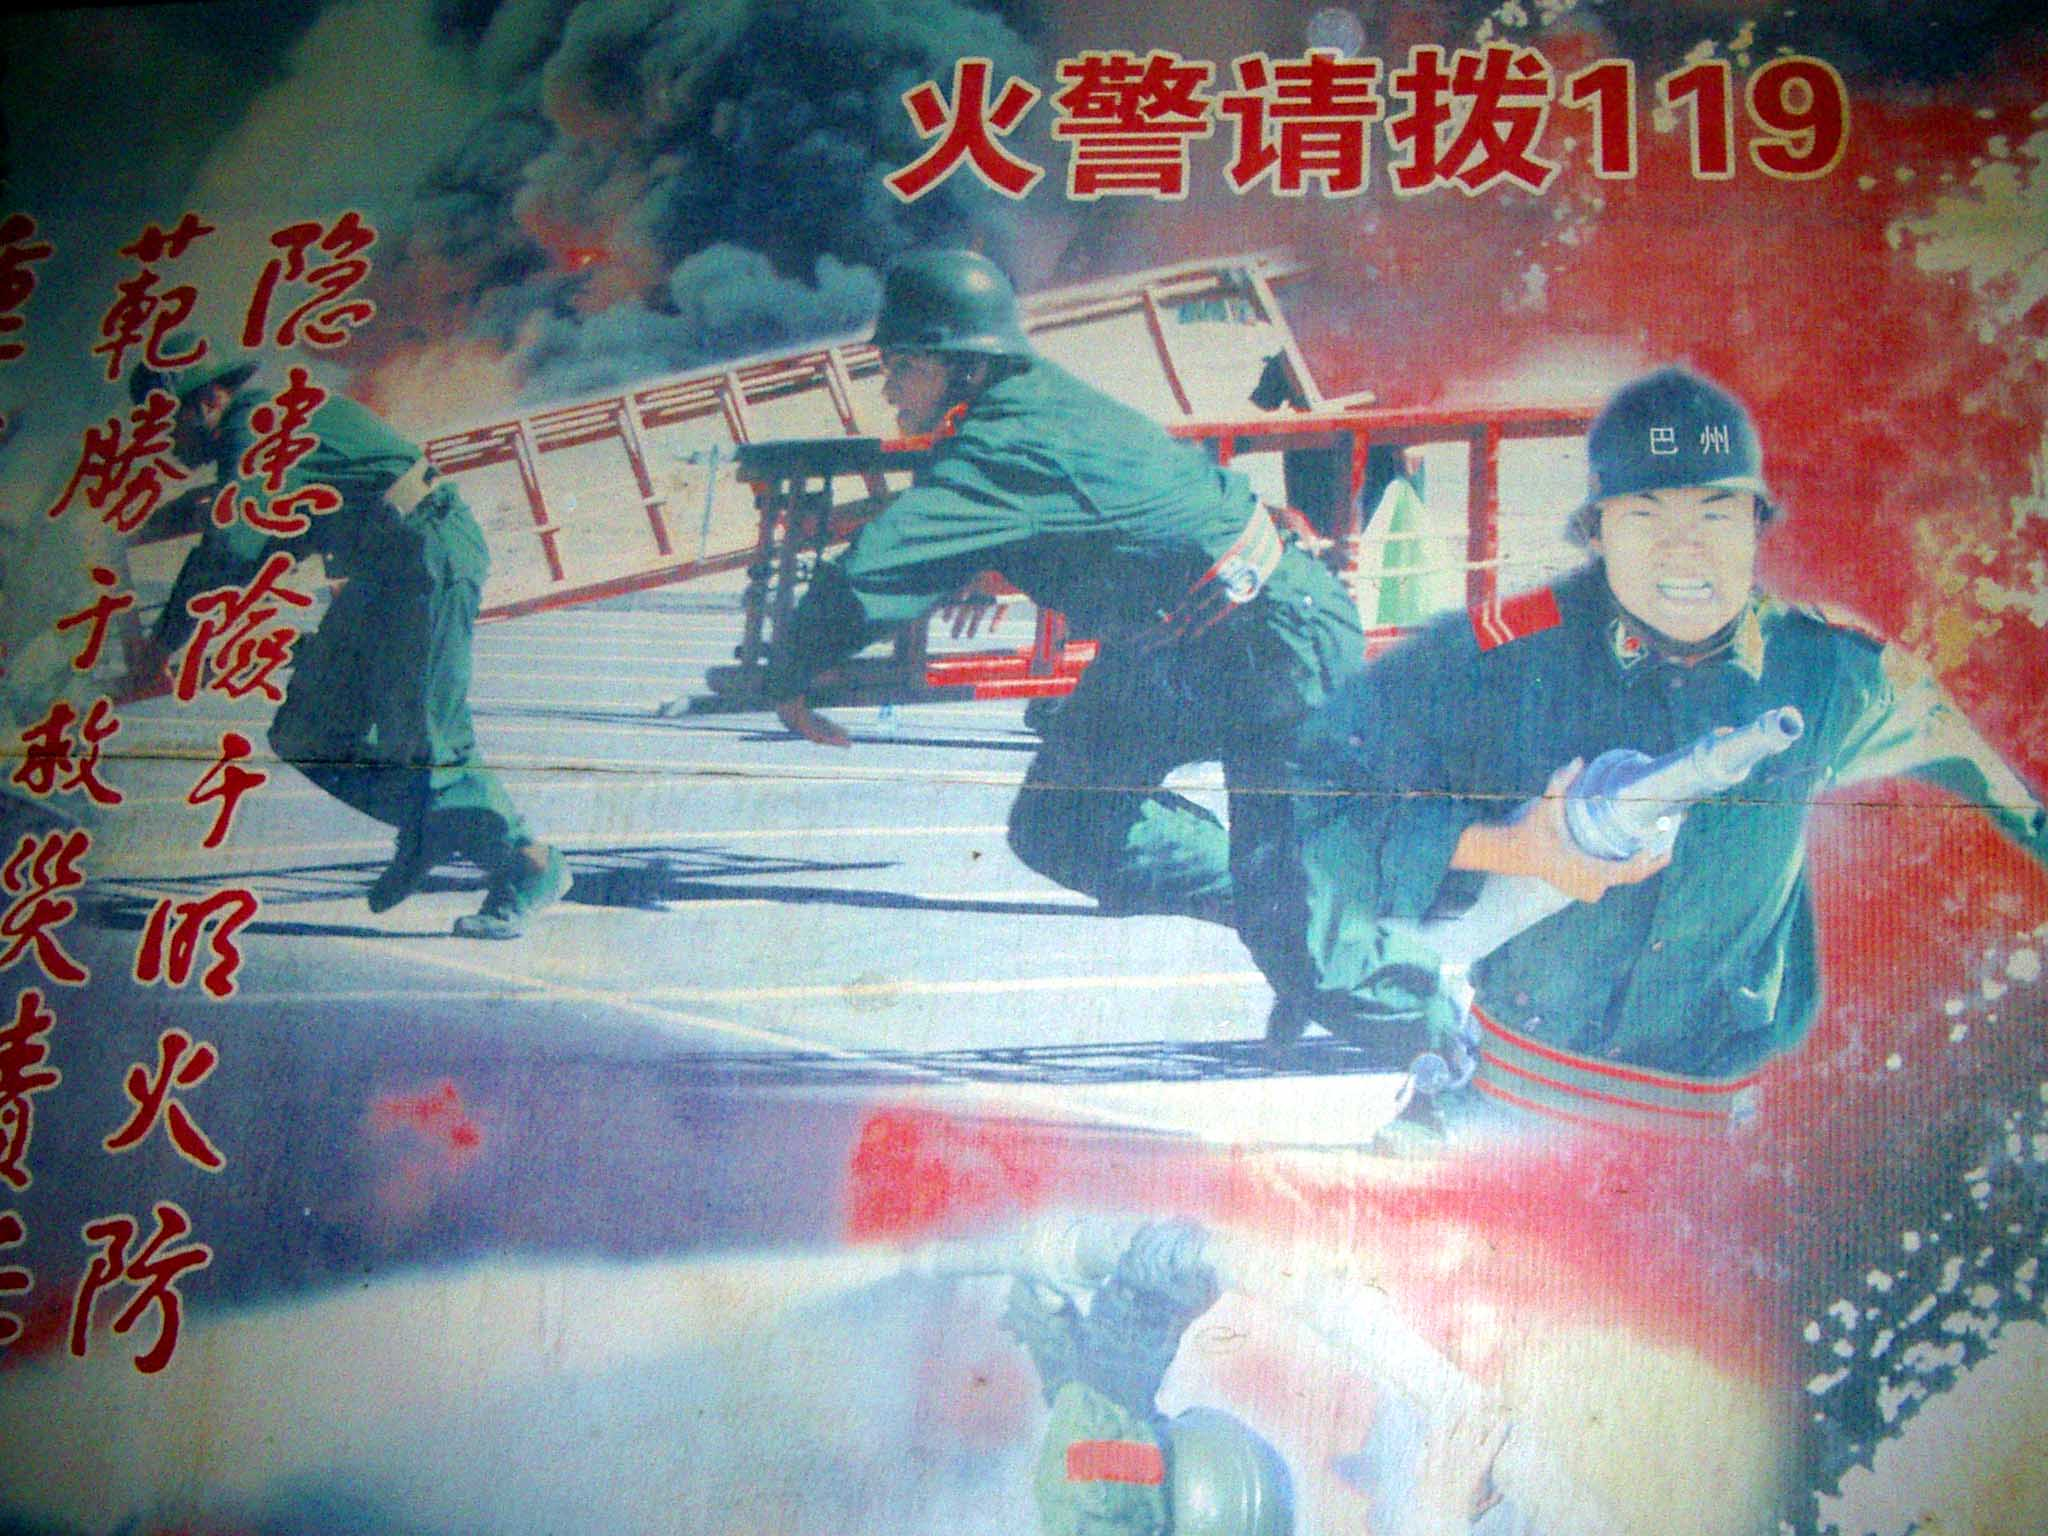 Firefighting in Korla is awesome and exciting! Note that in China you dial #119, not #911.